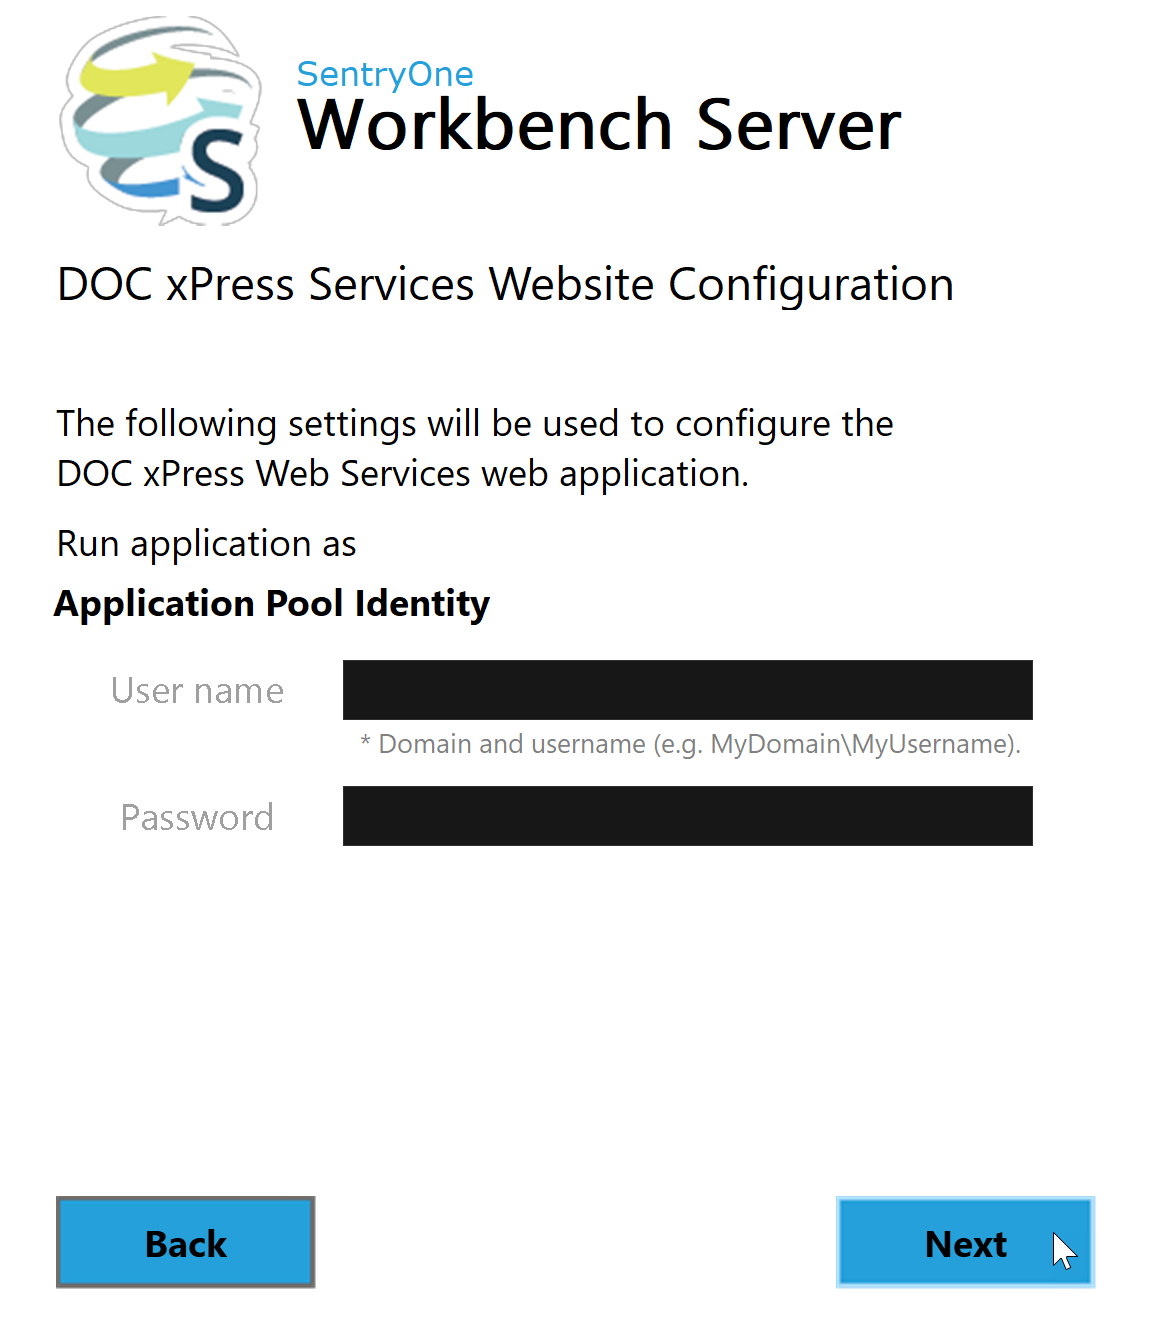 Workbench Server DOC xPress Services Website Configuration